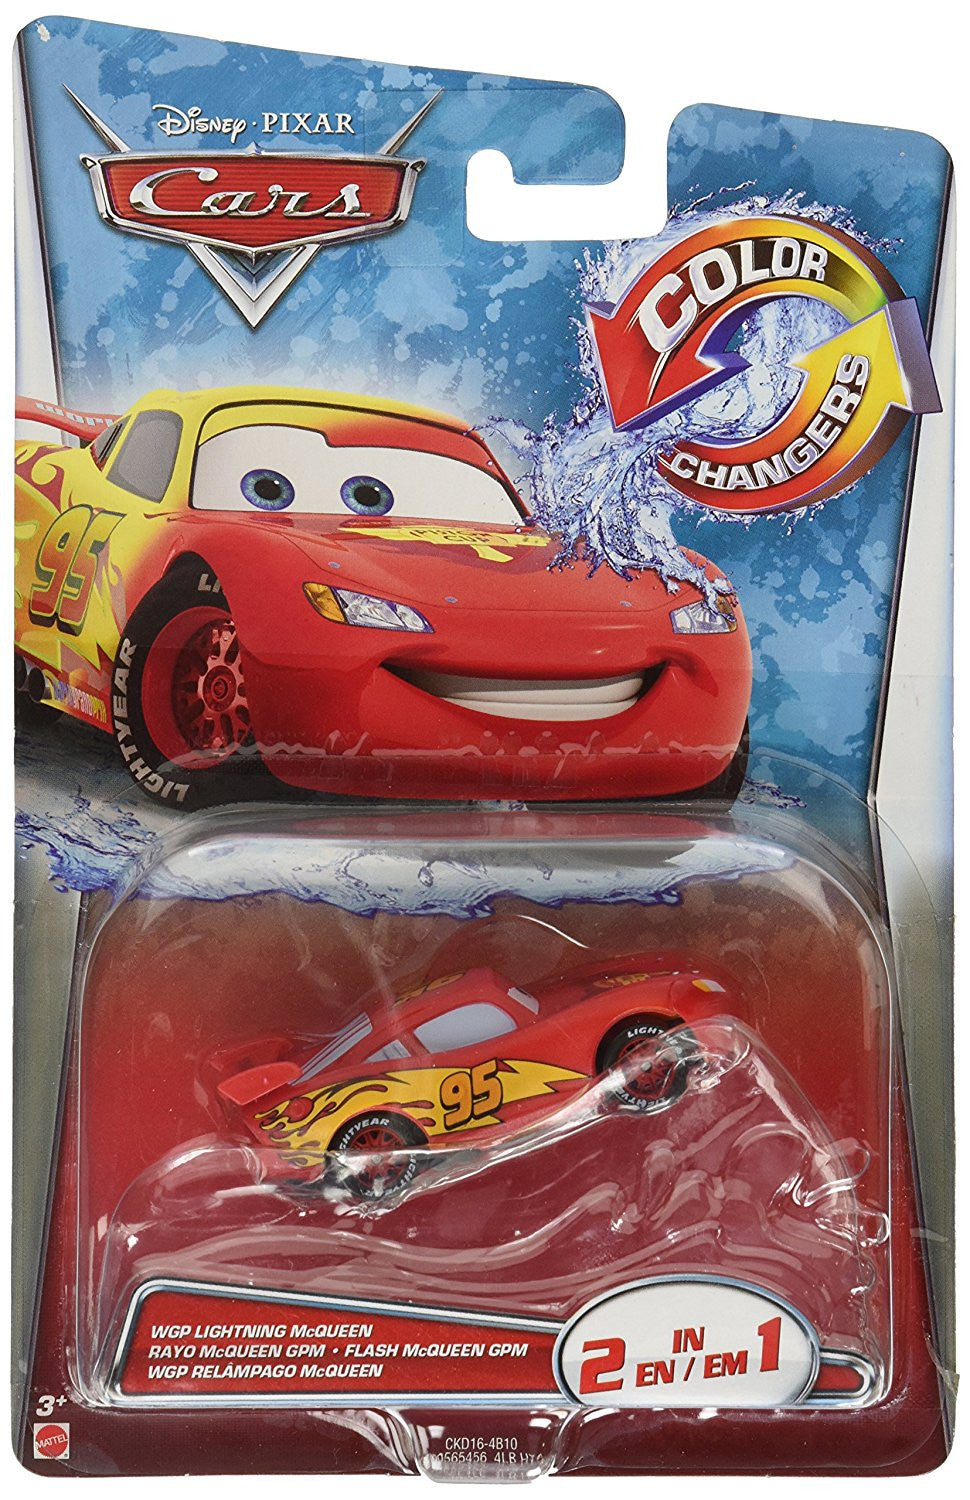 Disney Pixar Cars Color Changer vehicles - Thekidzone